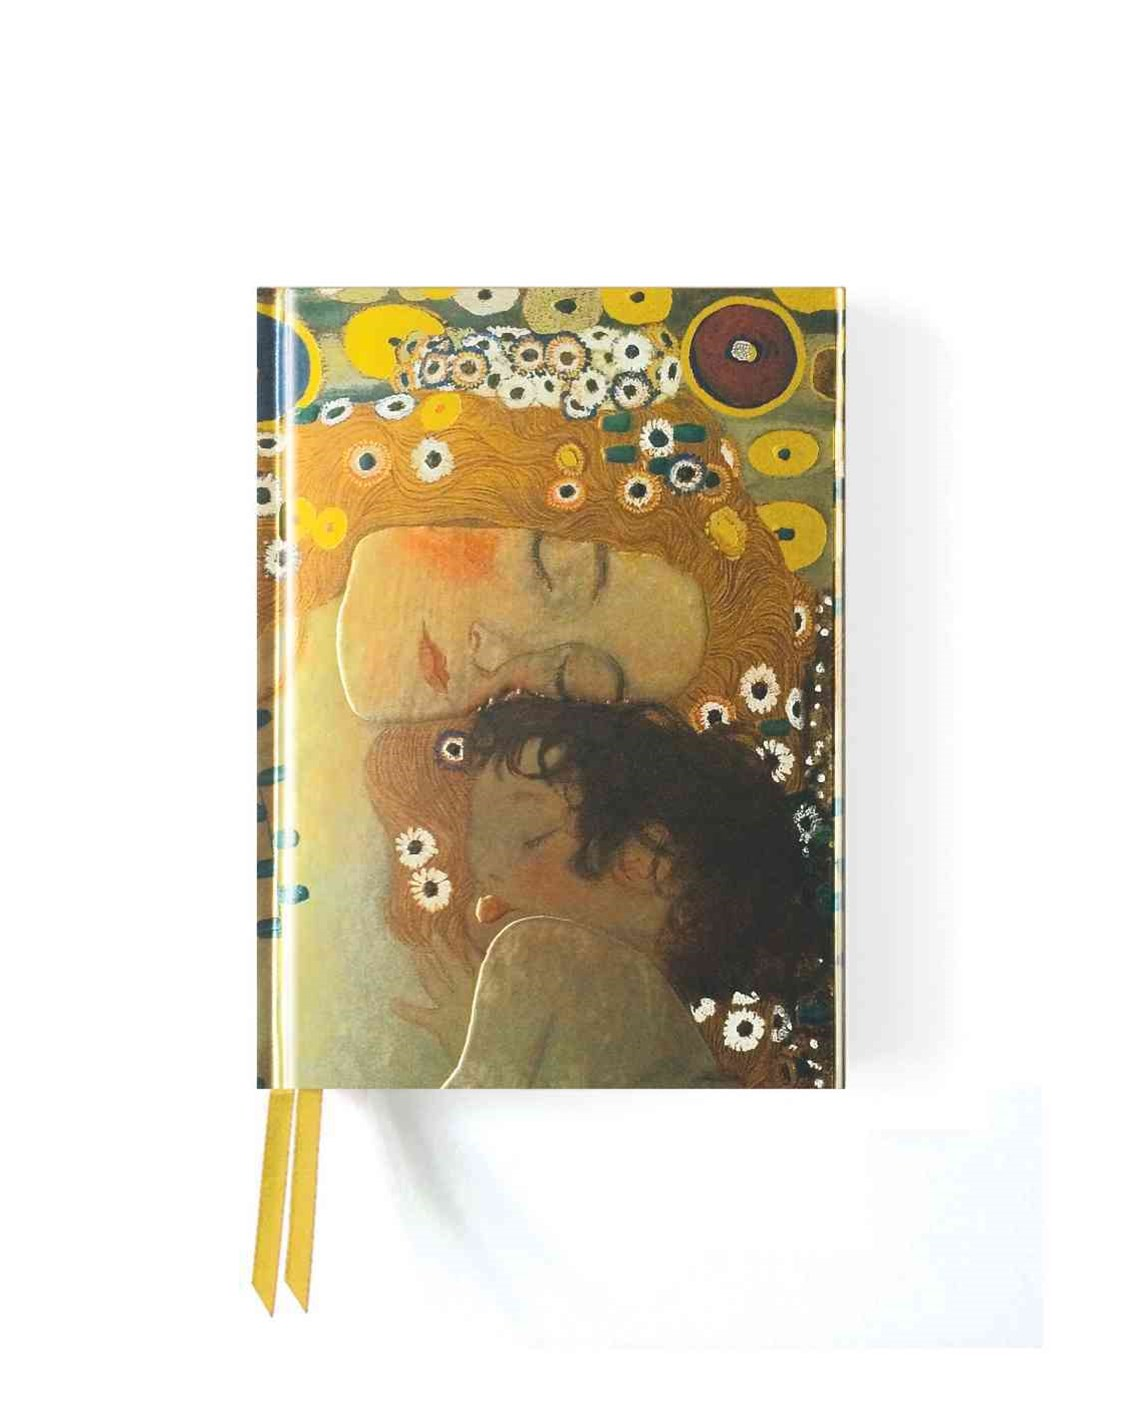 Foiled Pocket Journal: Klimt's Three Ages of Women